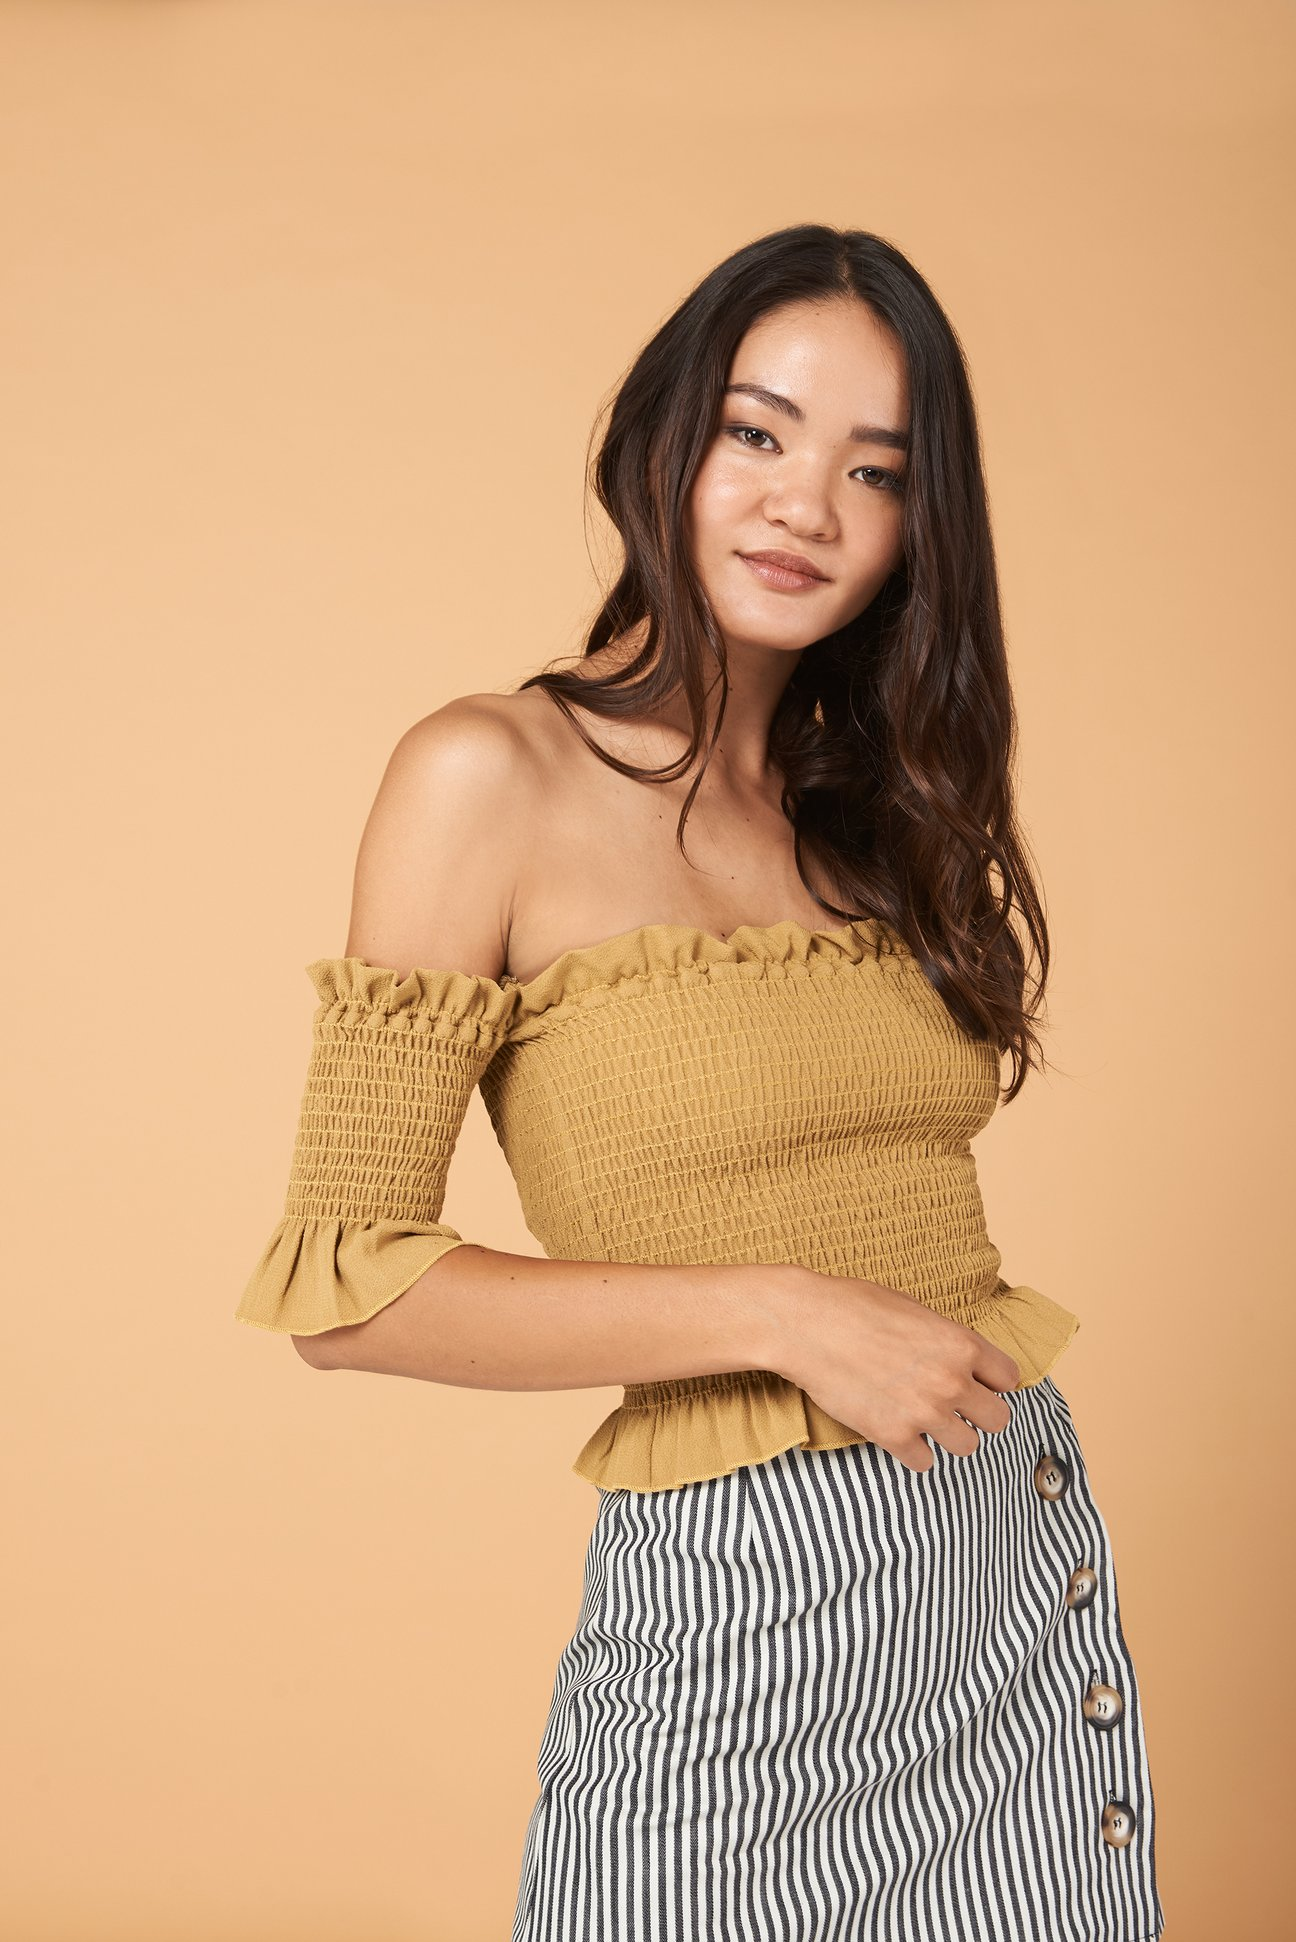 Dena Top in Gold - $84